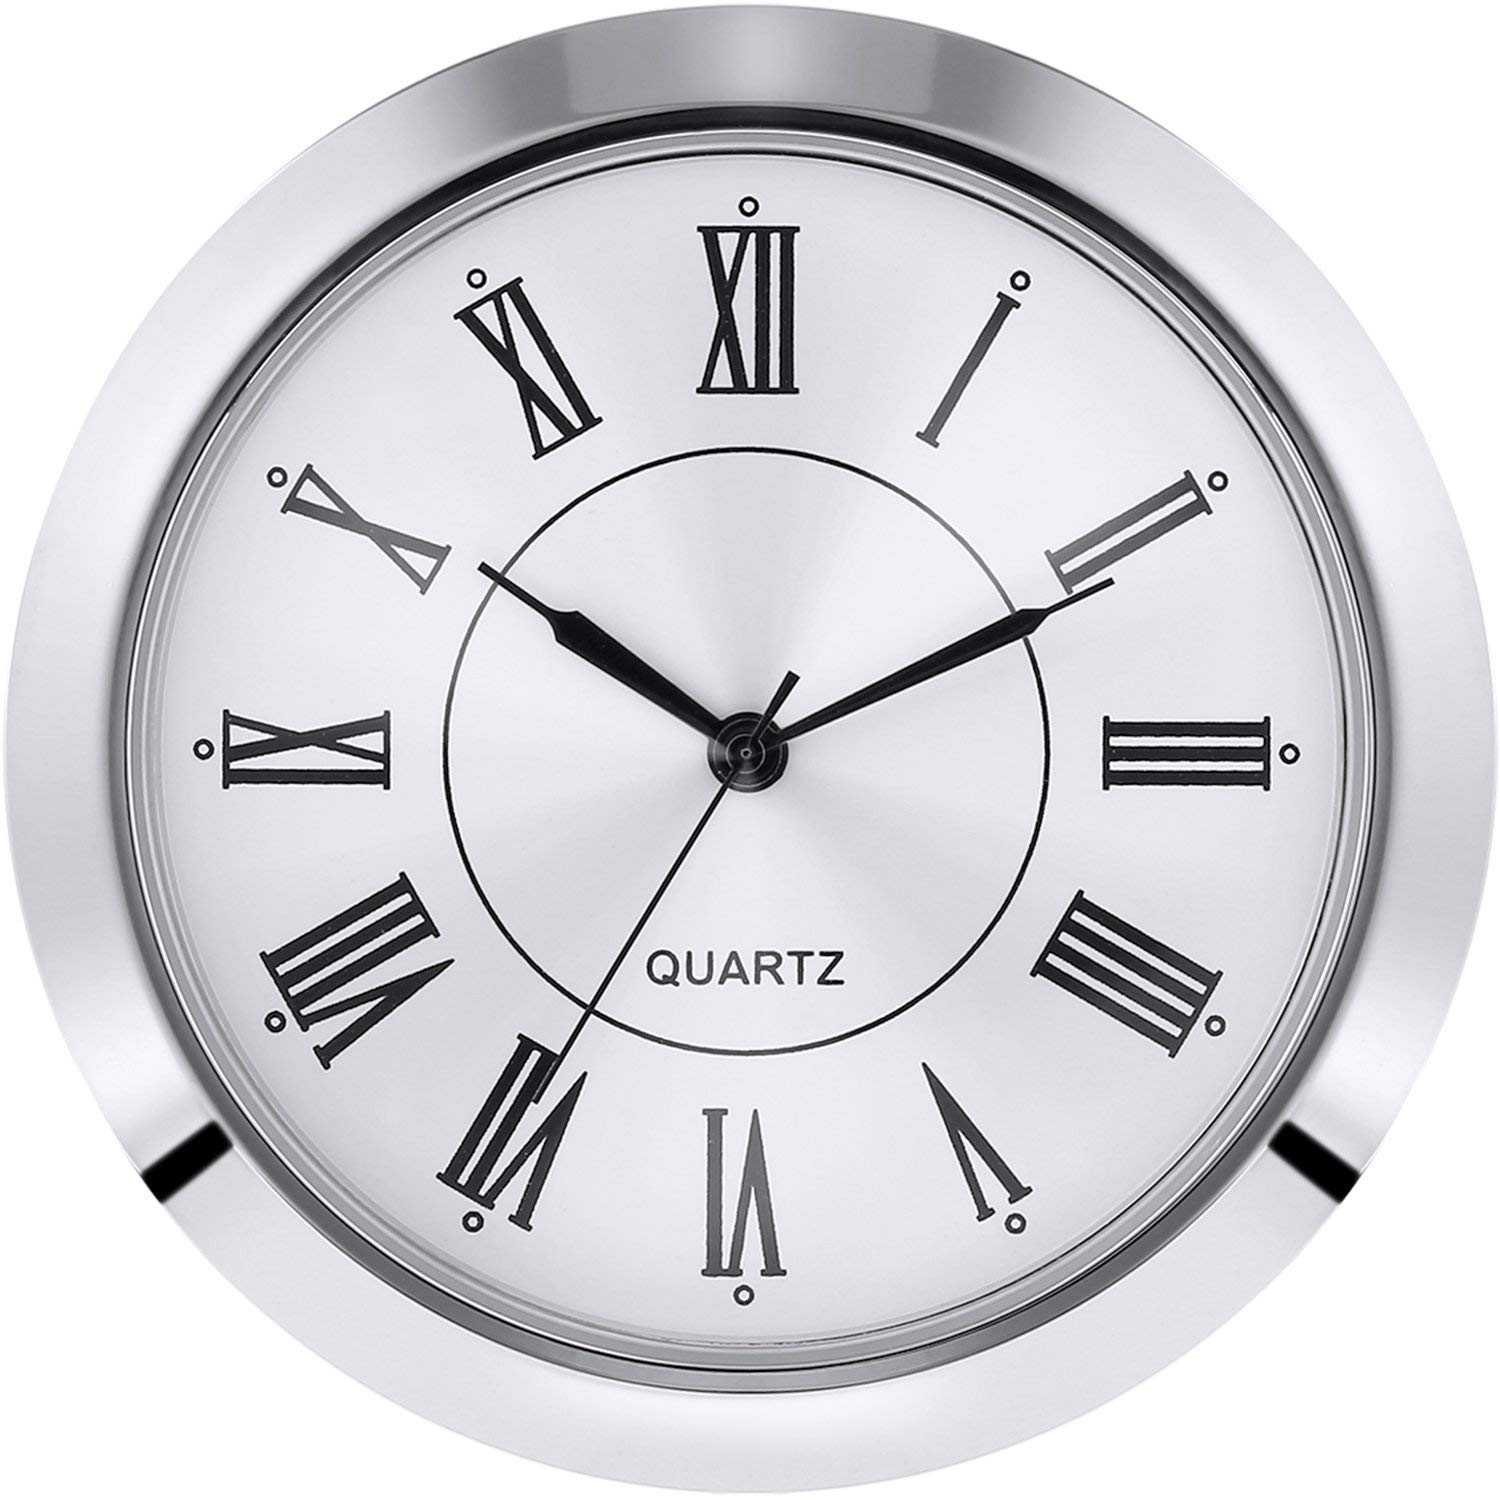 Hicarer 2-1/8 Inch (55 mm) Quartz Clock Fit-up/Insert, Fit Diameter 1-7/8 to 2 Inch (48-50 mm) Hole, Zinc-Alloy Metal Case, Roman Numeral (Silver)